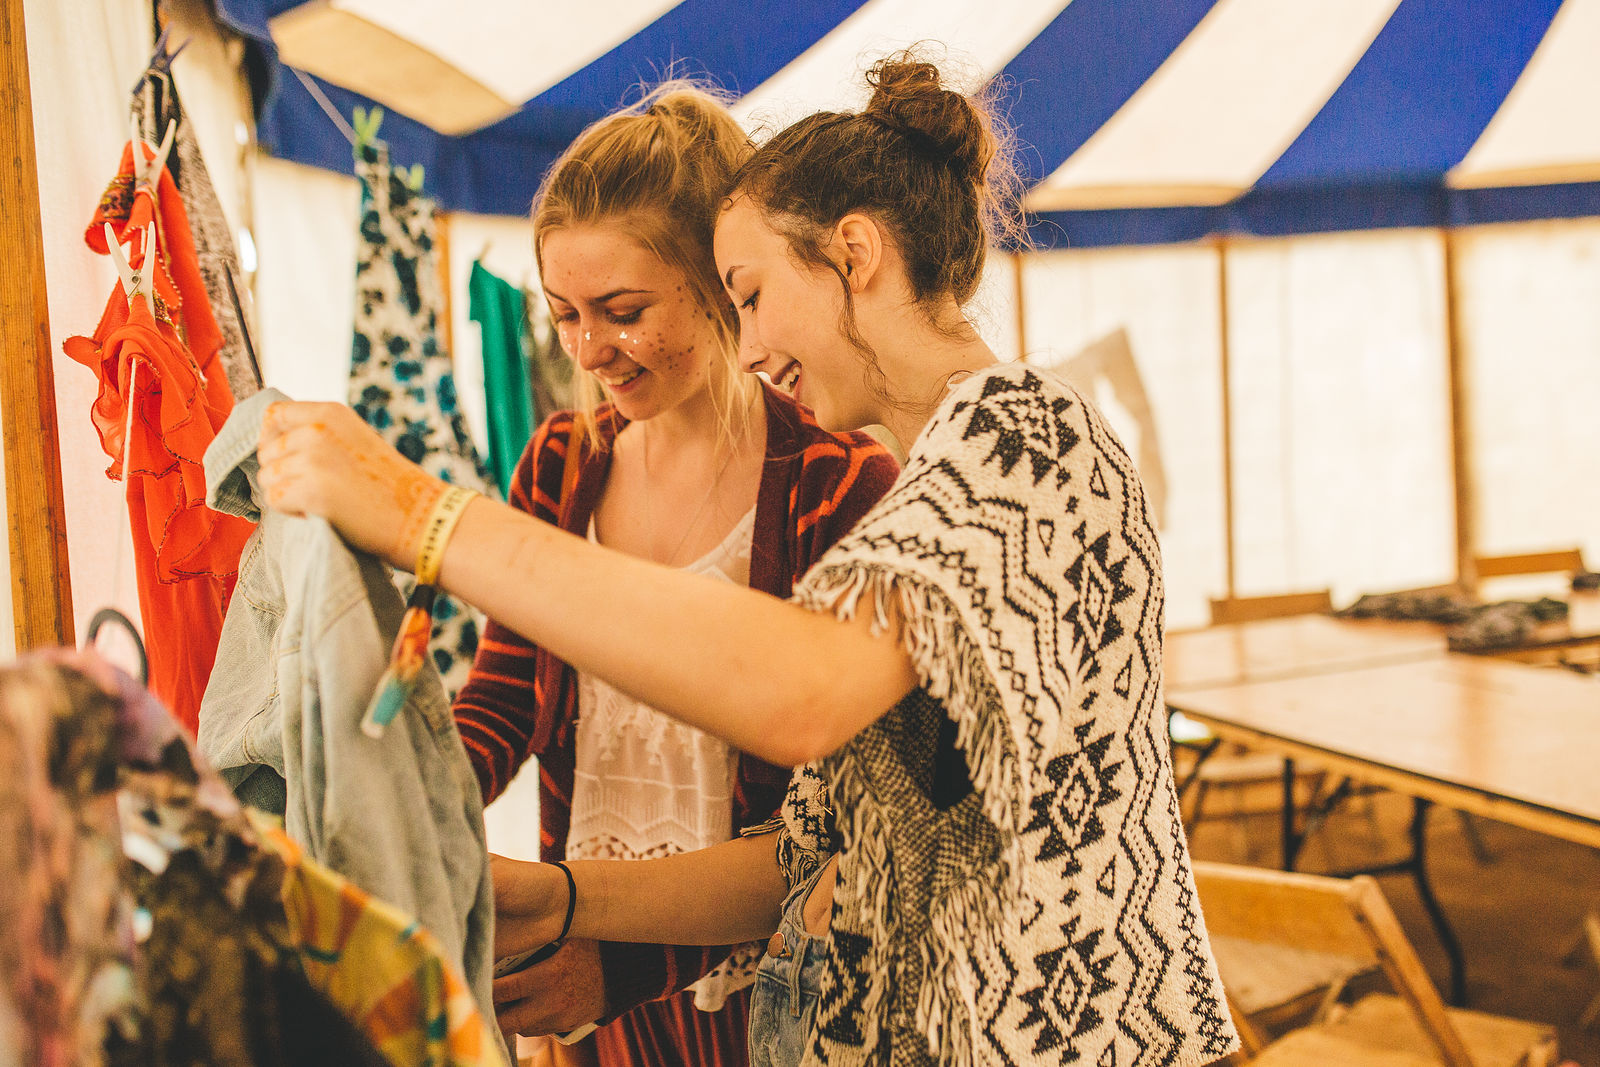 Port Eliot Clothes Swap